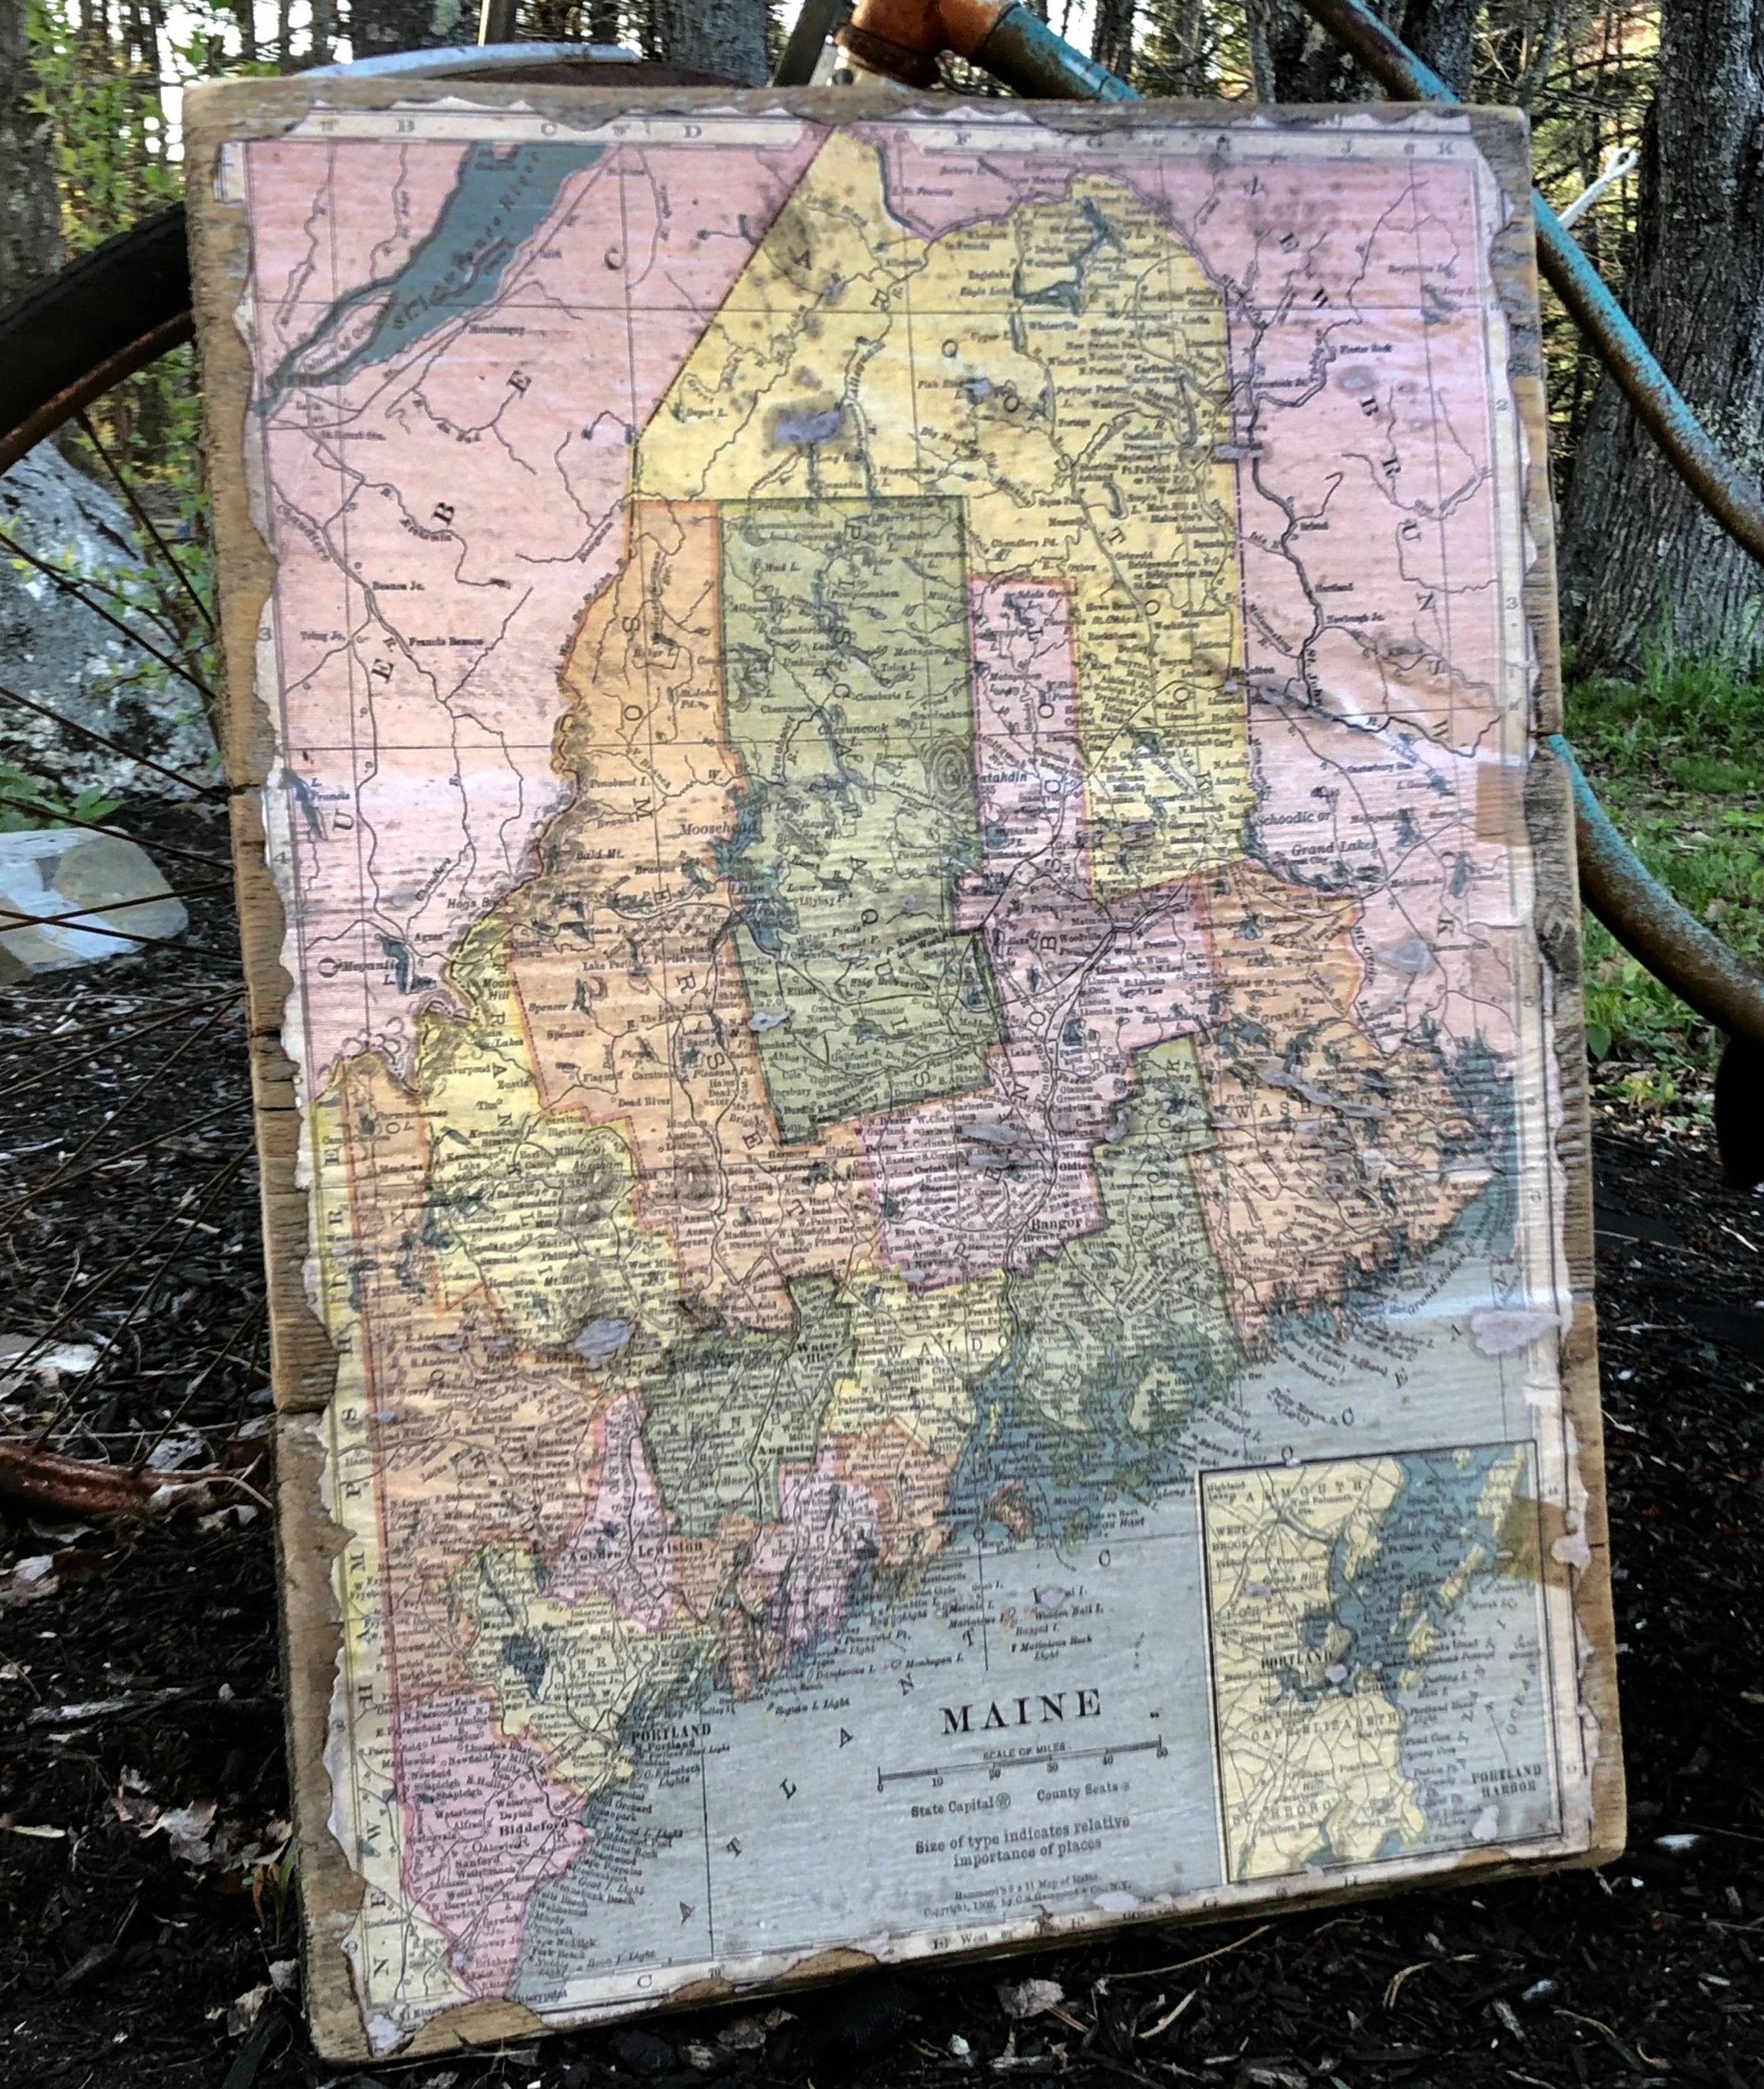 Maine Map on Barnwood